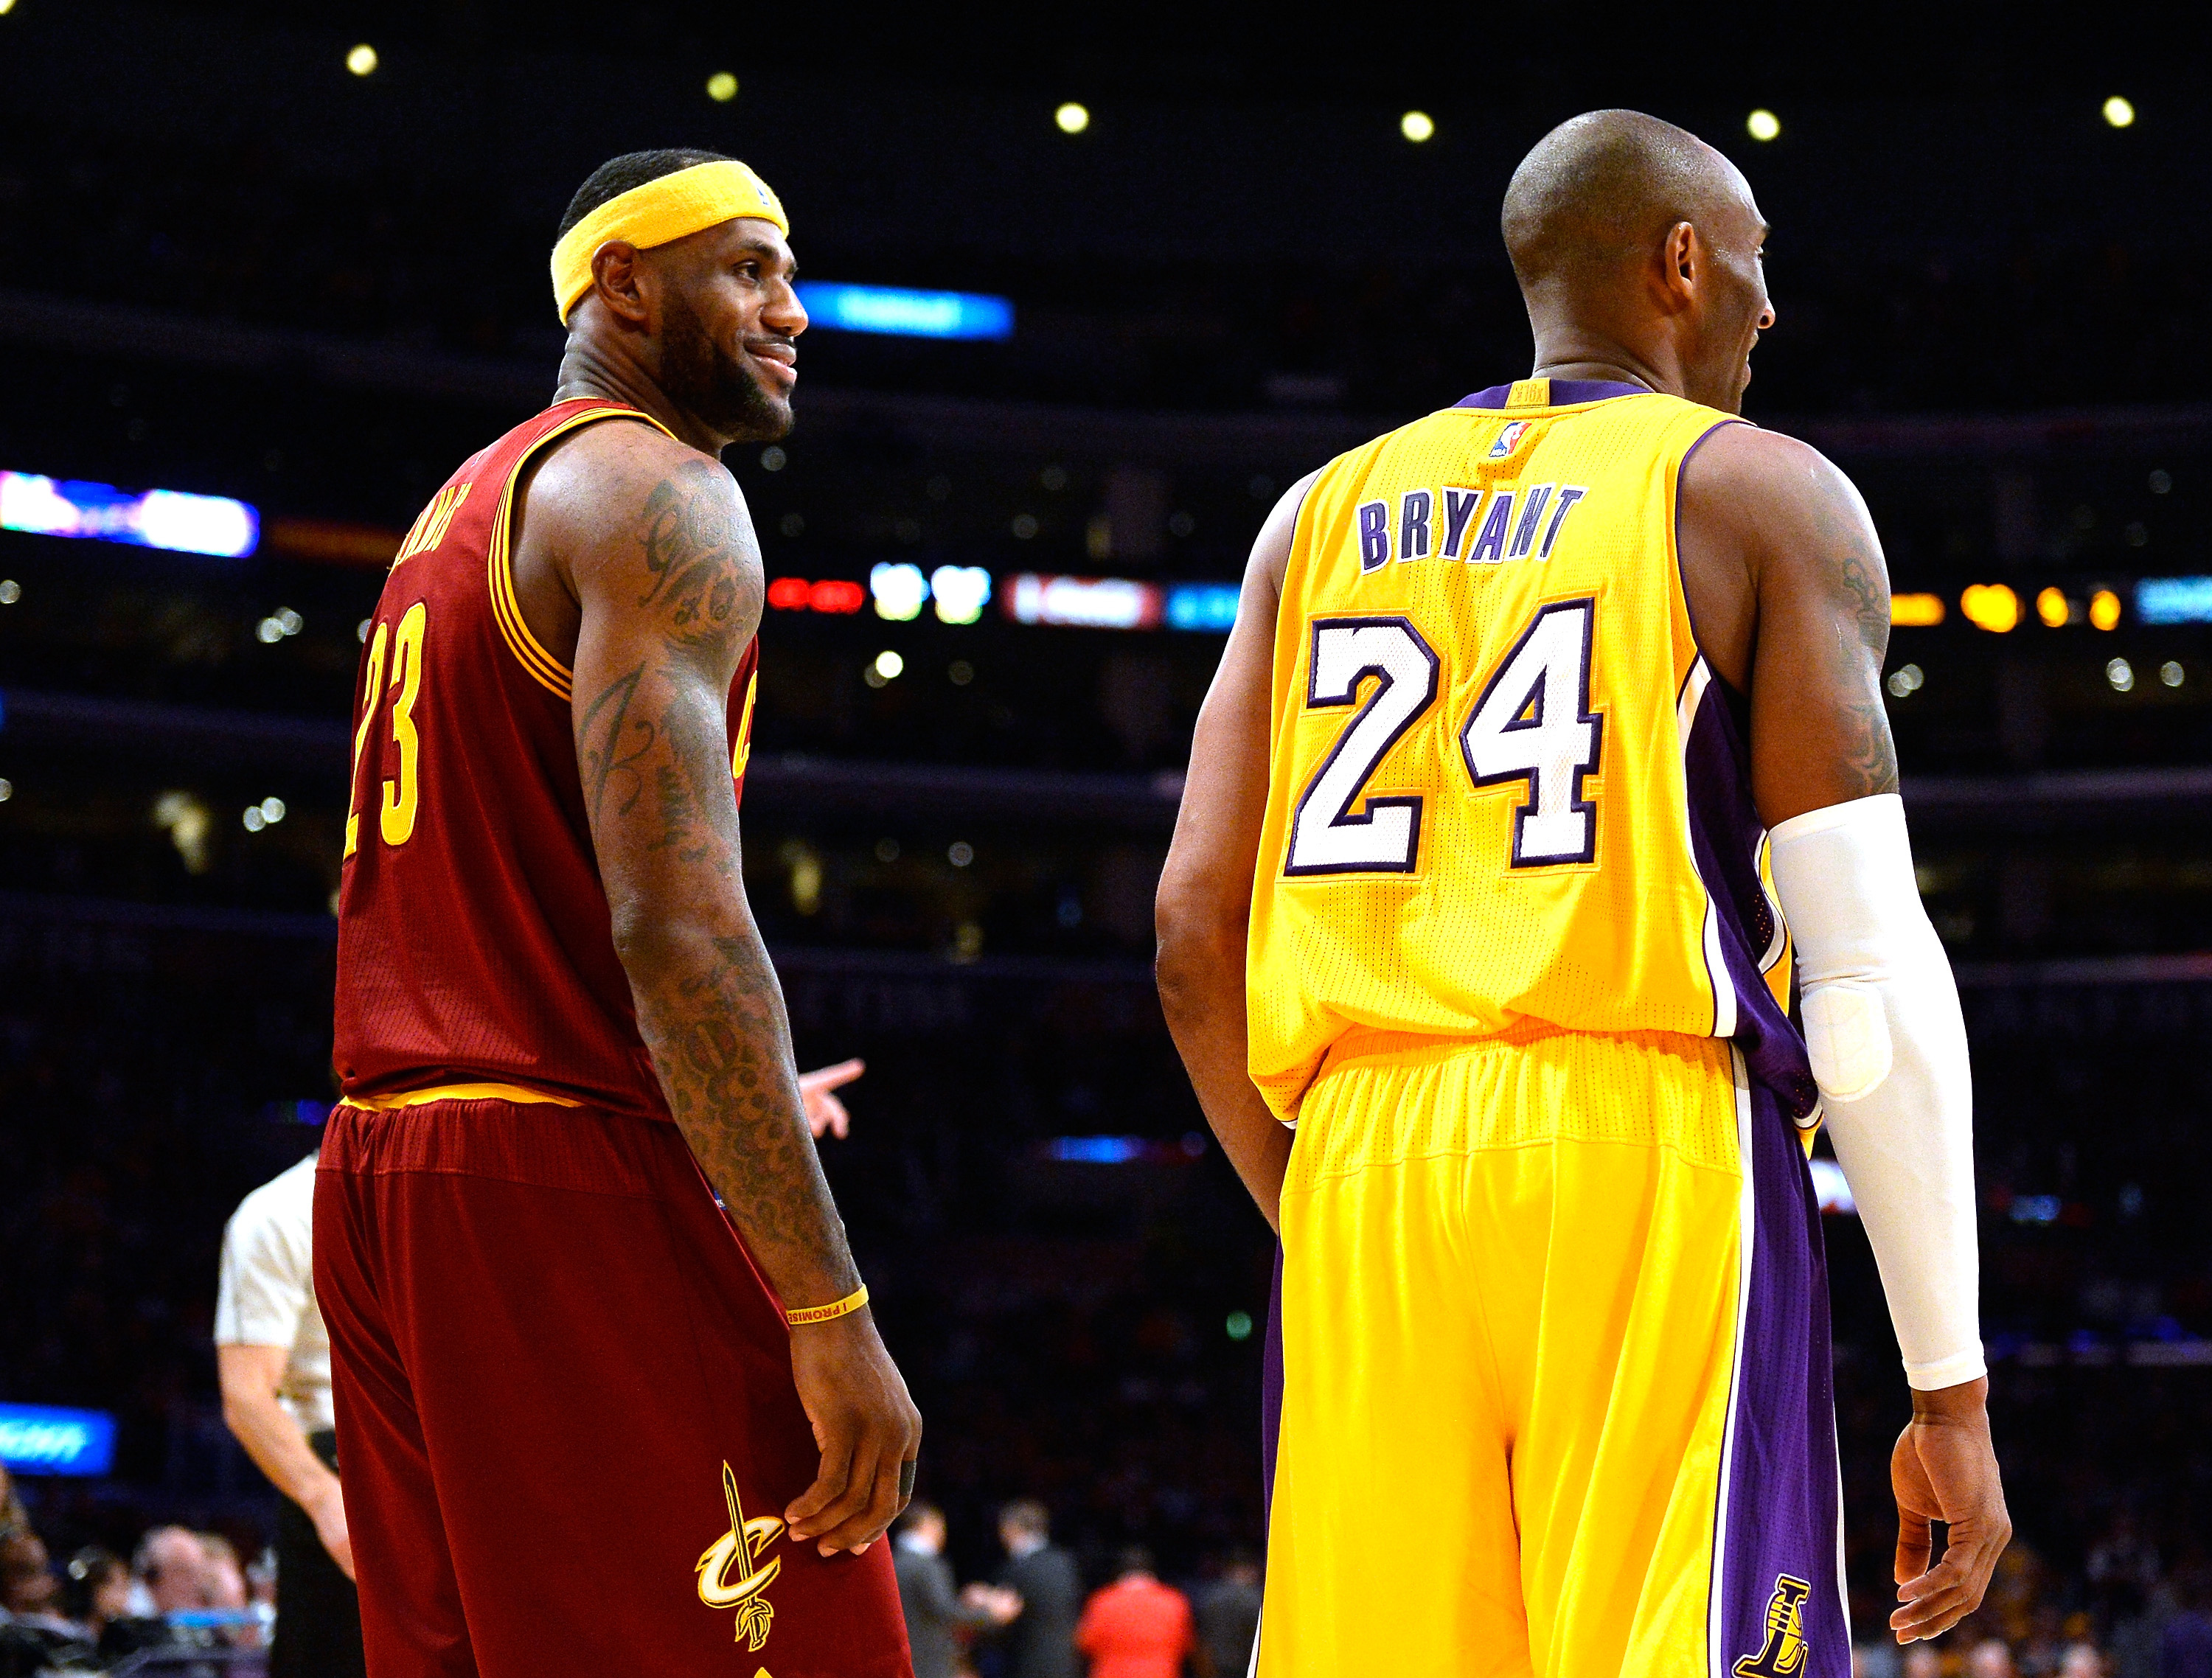 Nine years ago, the Lakers tried to trade Kobe Bryant for LeBron James